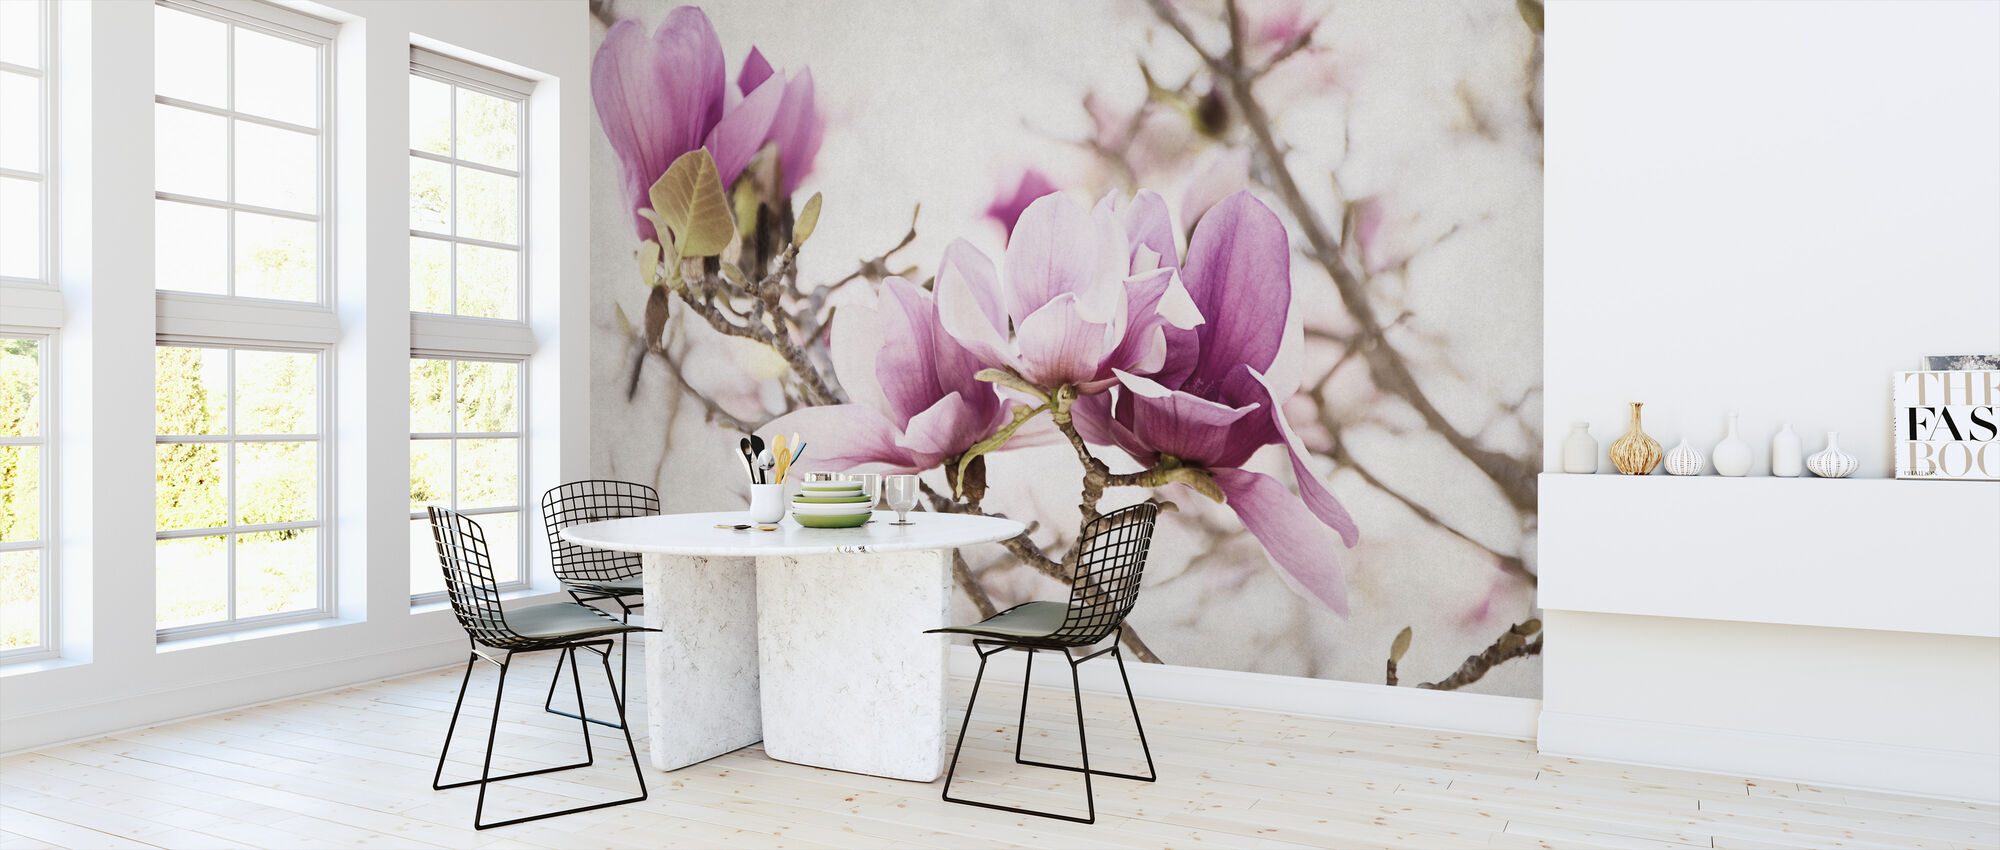 Spring is In the Air III - Wallpaper - Kitchen